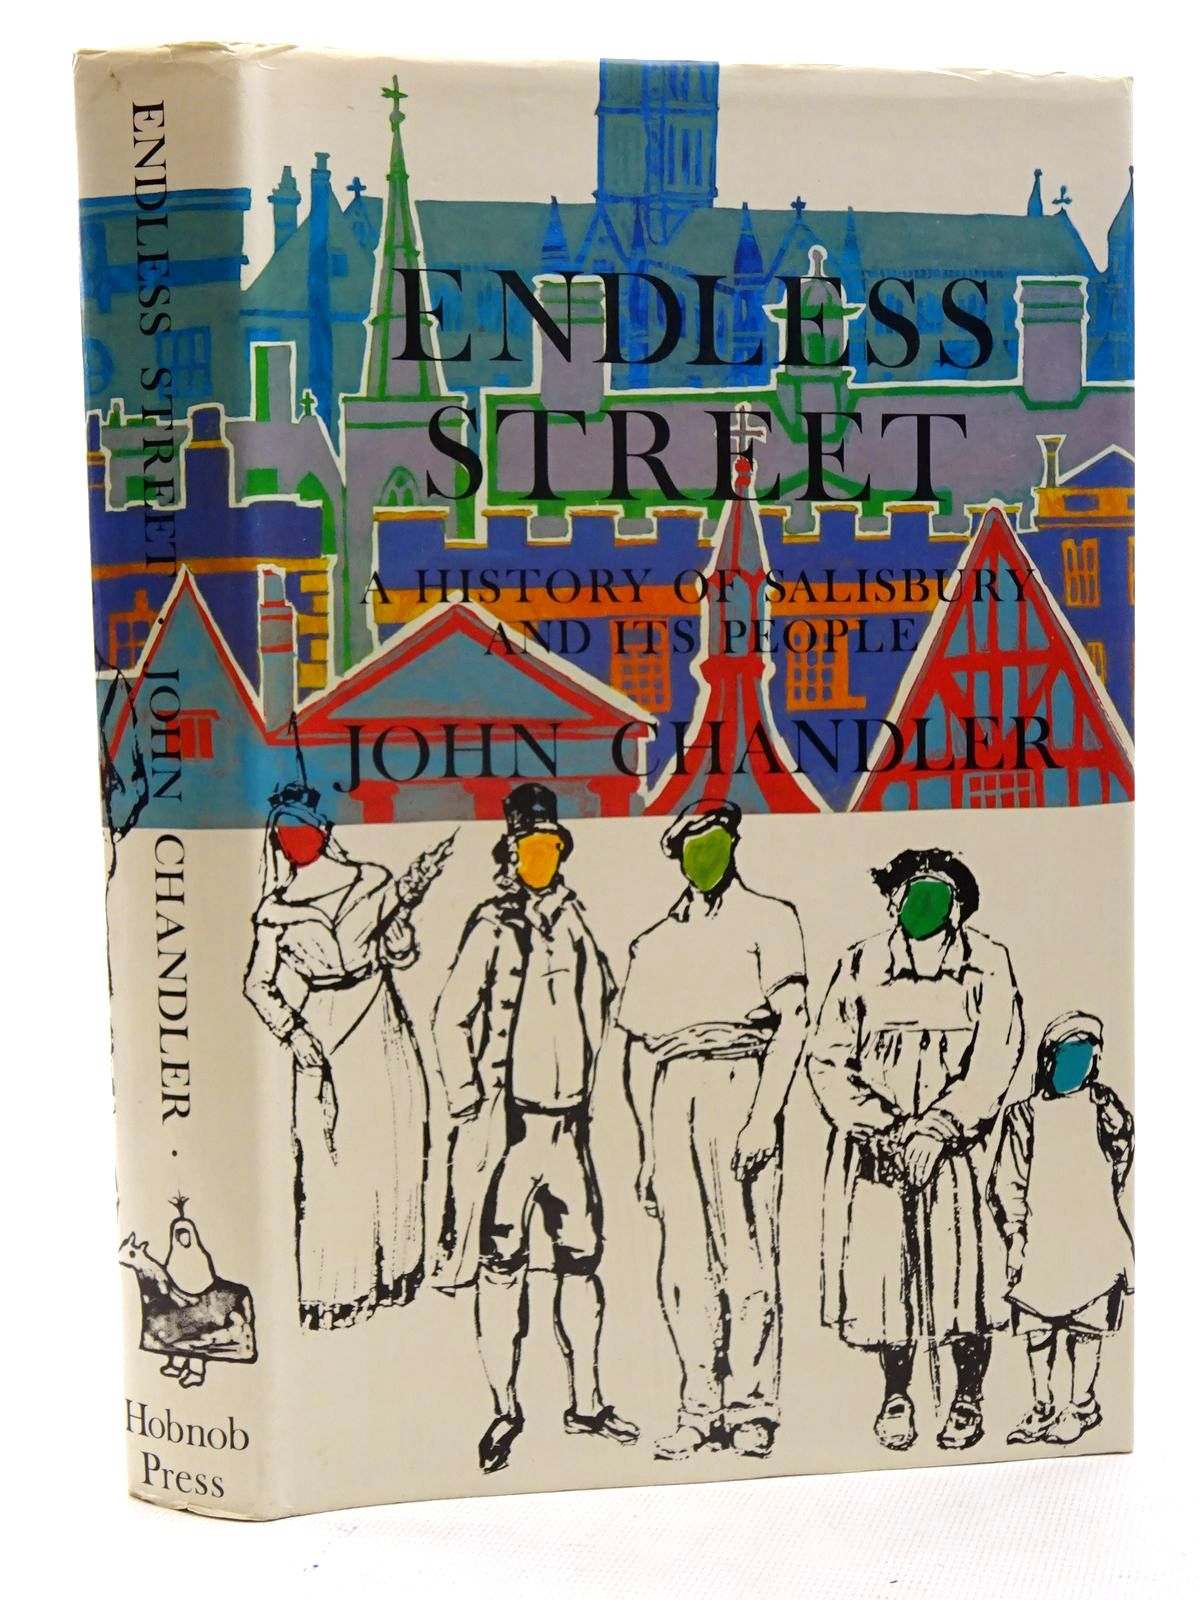 Photo of ENDLESS STREET A HISTORY OF SALISBURY AND ITS PEOPLE written by Chandler, John published by The Hobnob Press (STOCK CODE: 2125824)  for sale by Stella & Rose's Books